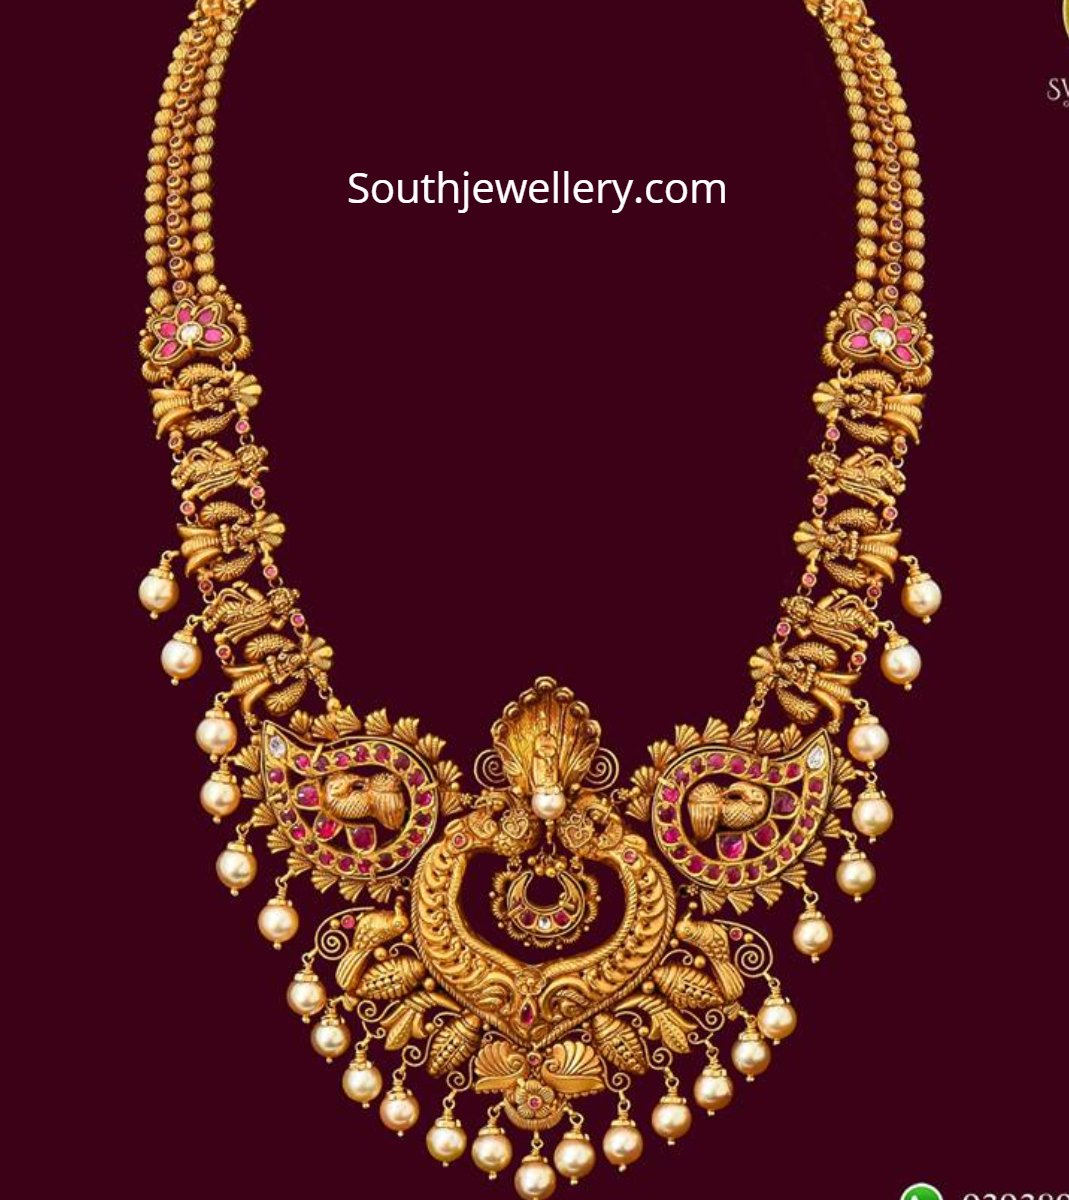 Traditional Antique Gold Haram Indian Jewellery Designs